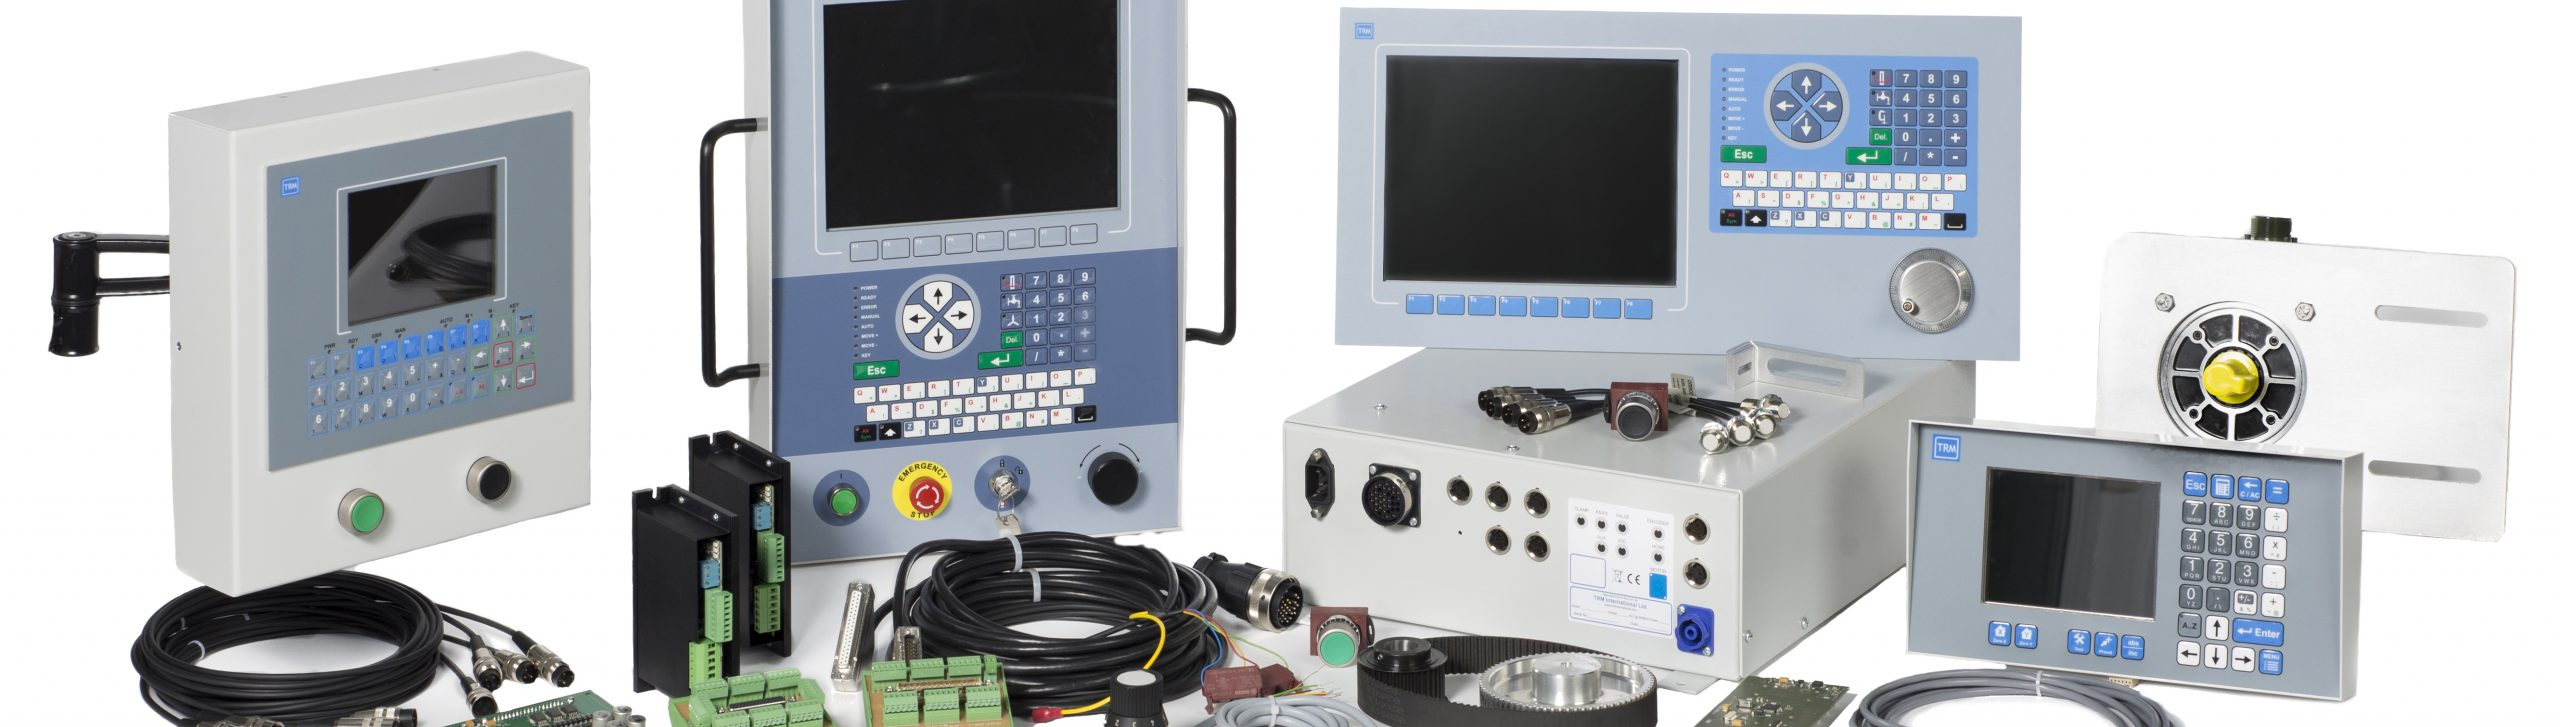 Group of CNC controllers and peripherals